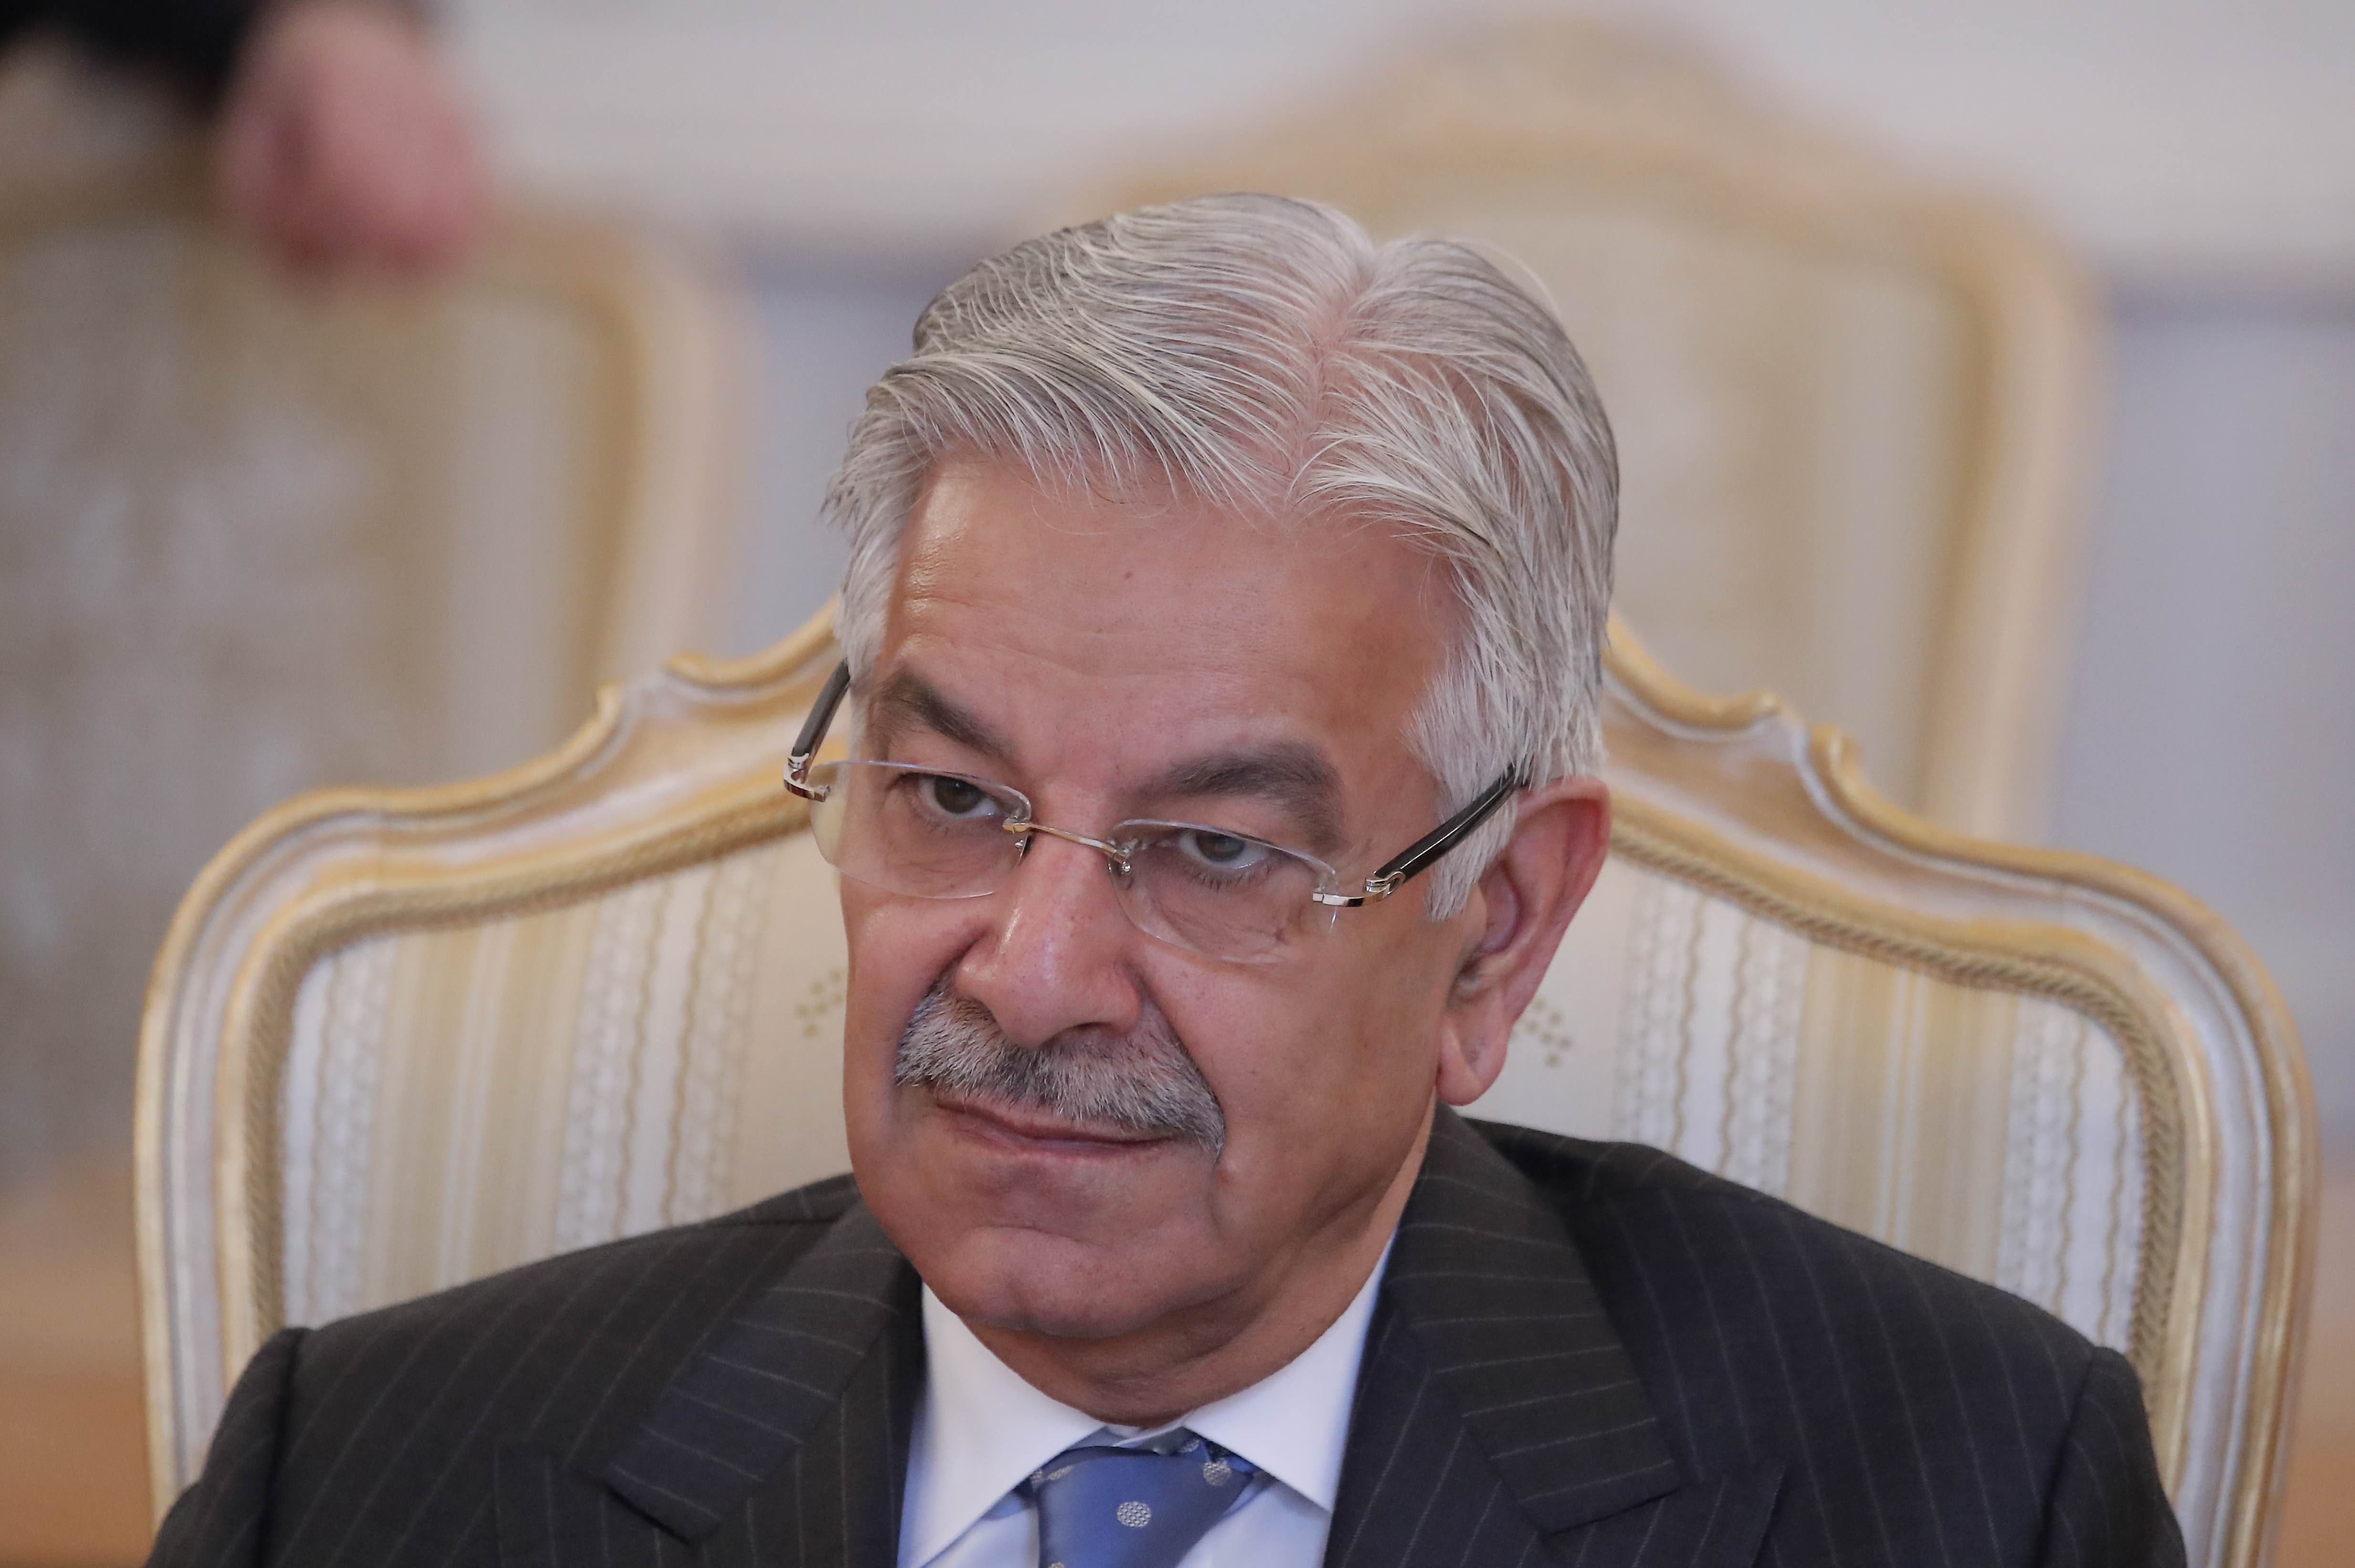 Pakistan Given Three-Month Reprieve Over Terrorist Financing Watchlist, Says Minister